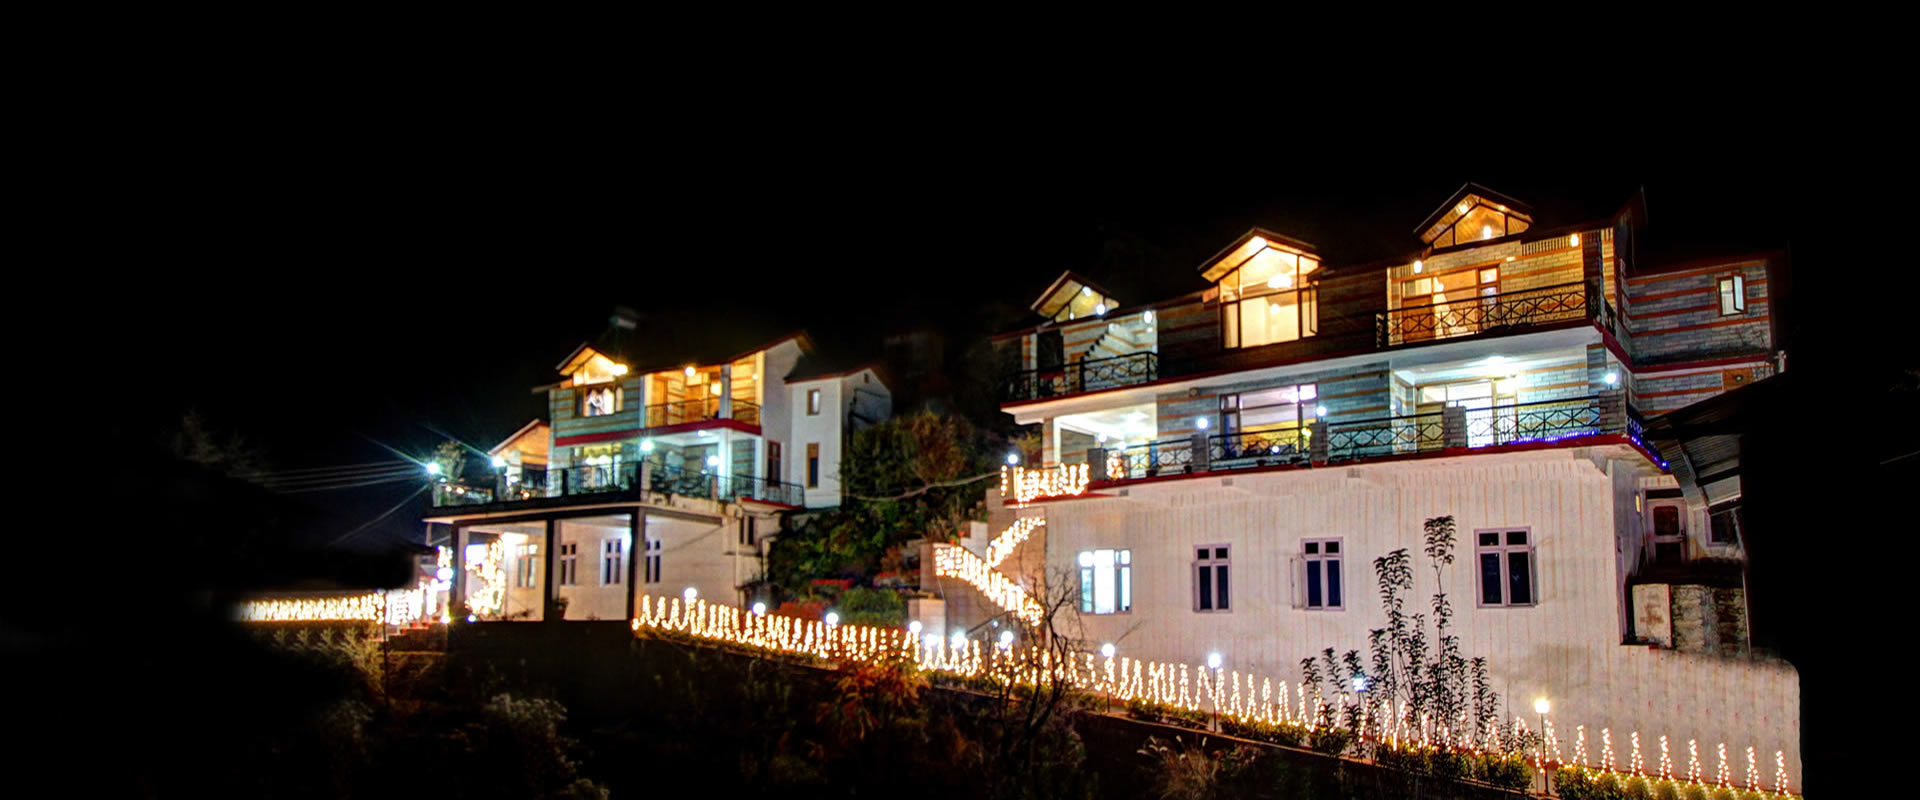 Apple Bud Cottages Manali - Better than any Hotels in Manali